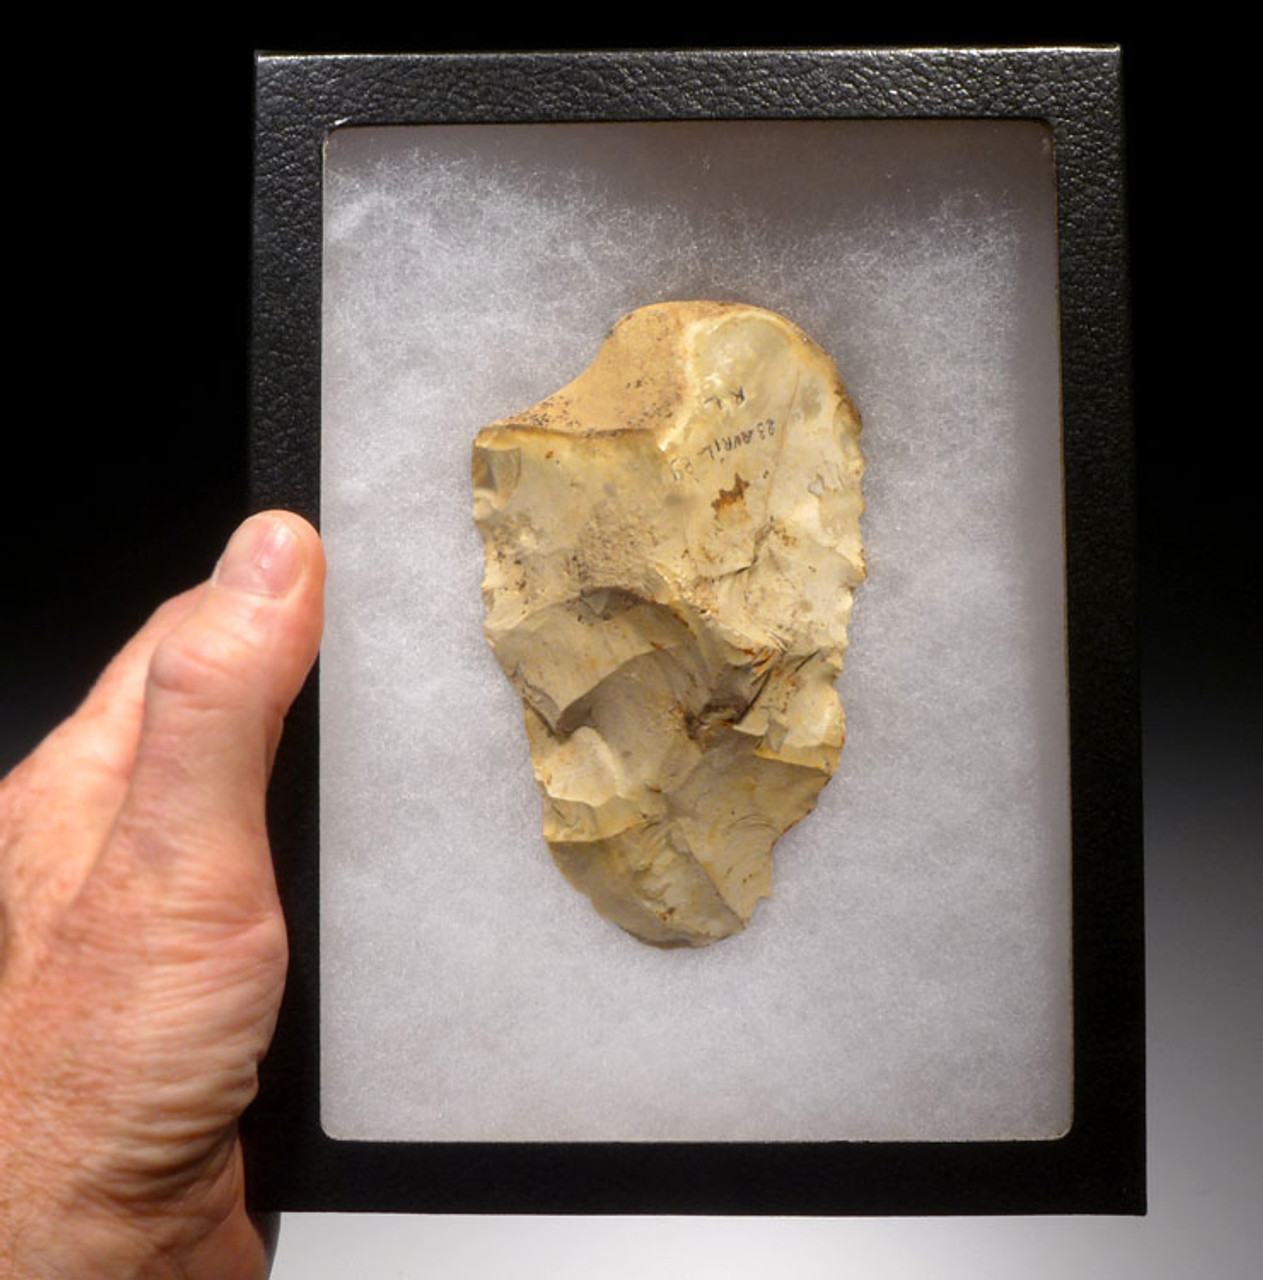 ACH208 - FRENCH ABBEVILLEAN ACHEULIAN FLINT HANDAXE WITH UNIQUE GRIP DESIGN FROM EUROPE'S FIRST HUMANS